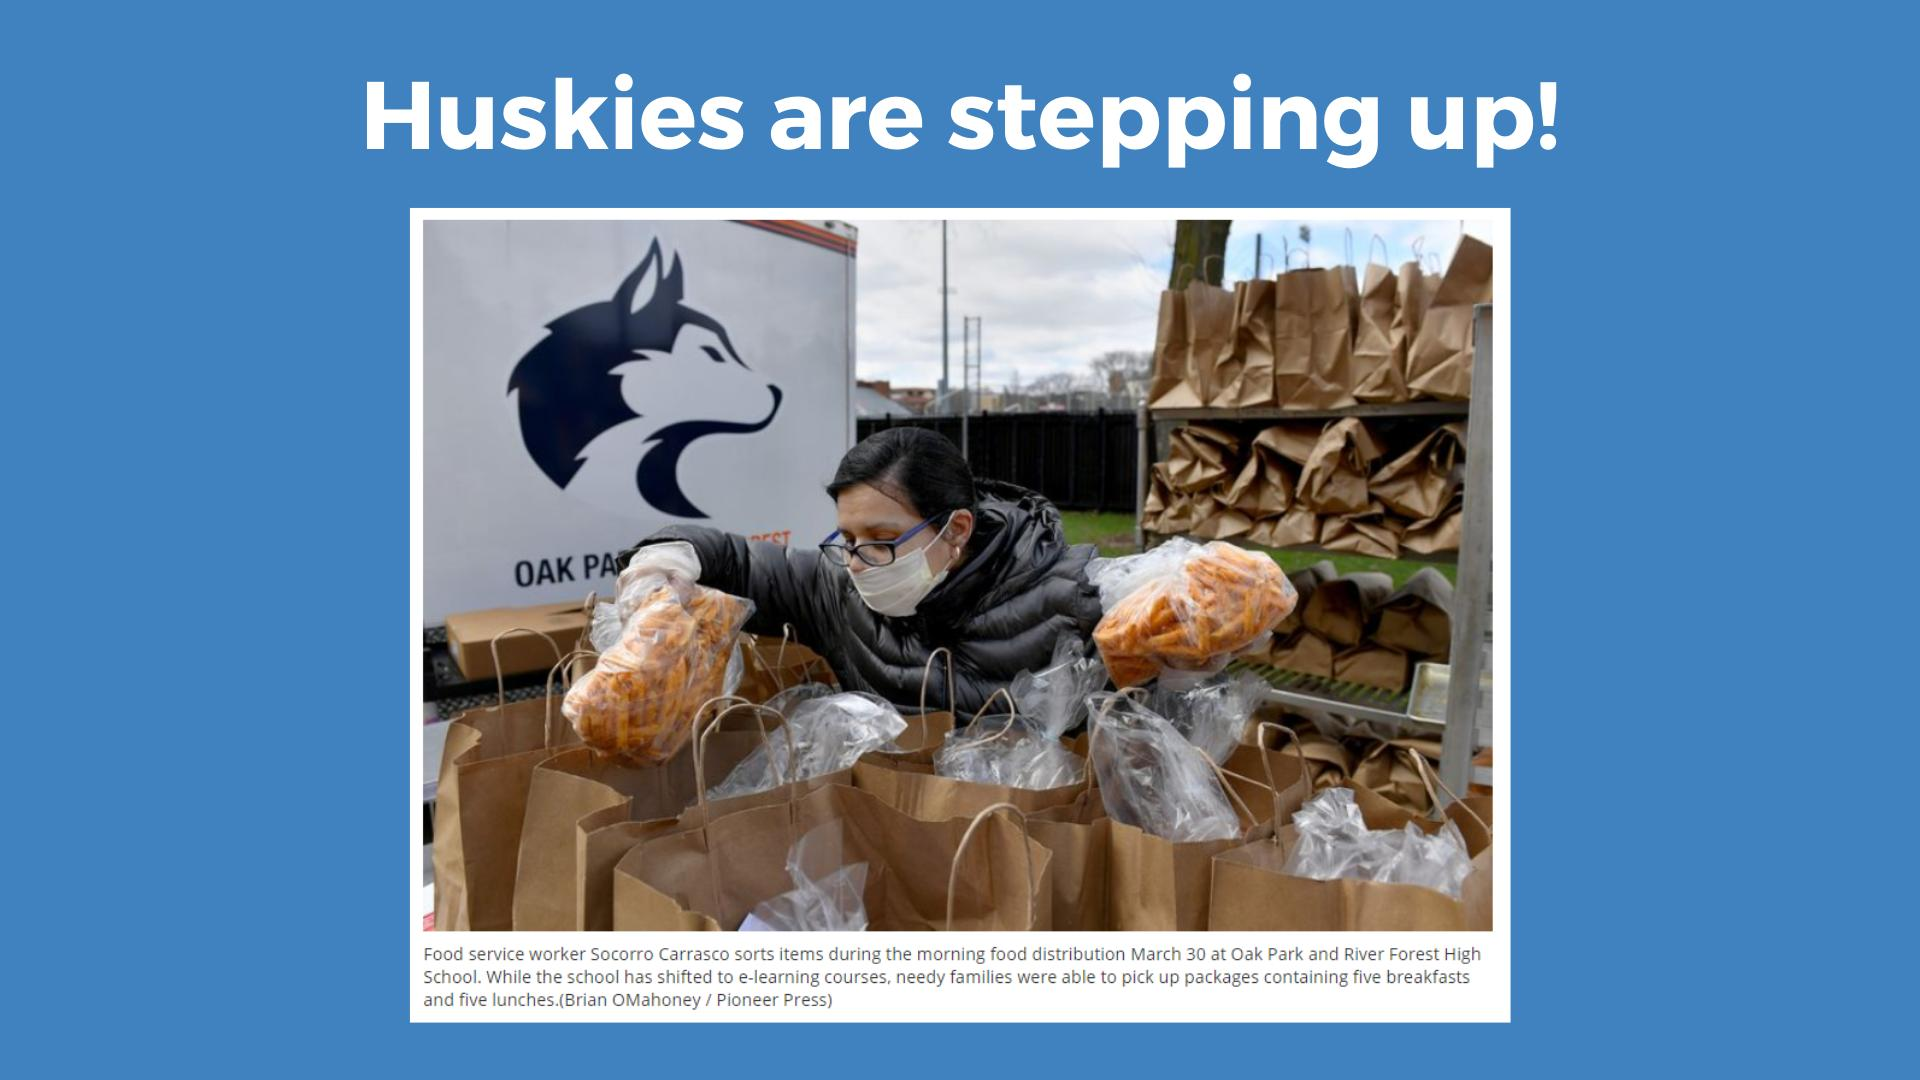 Huskies in the News